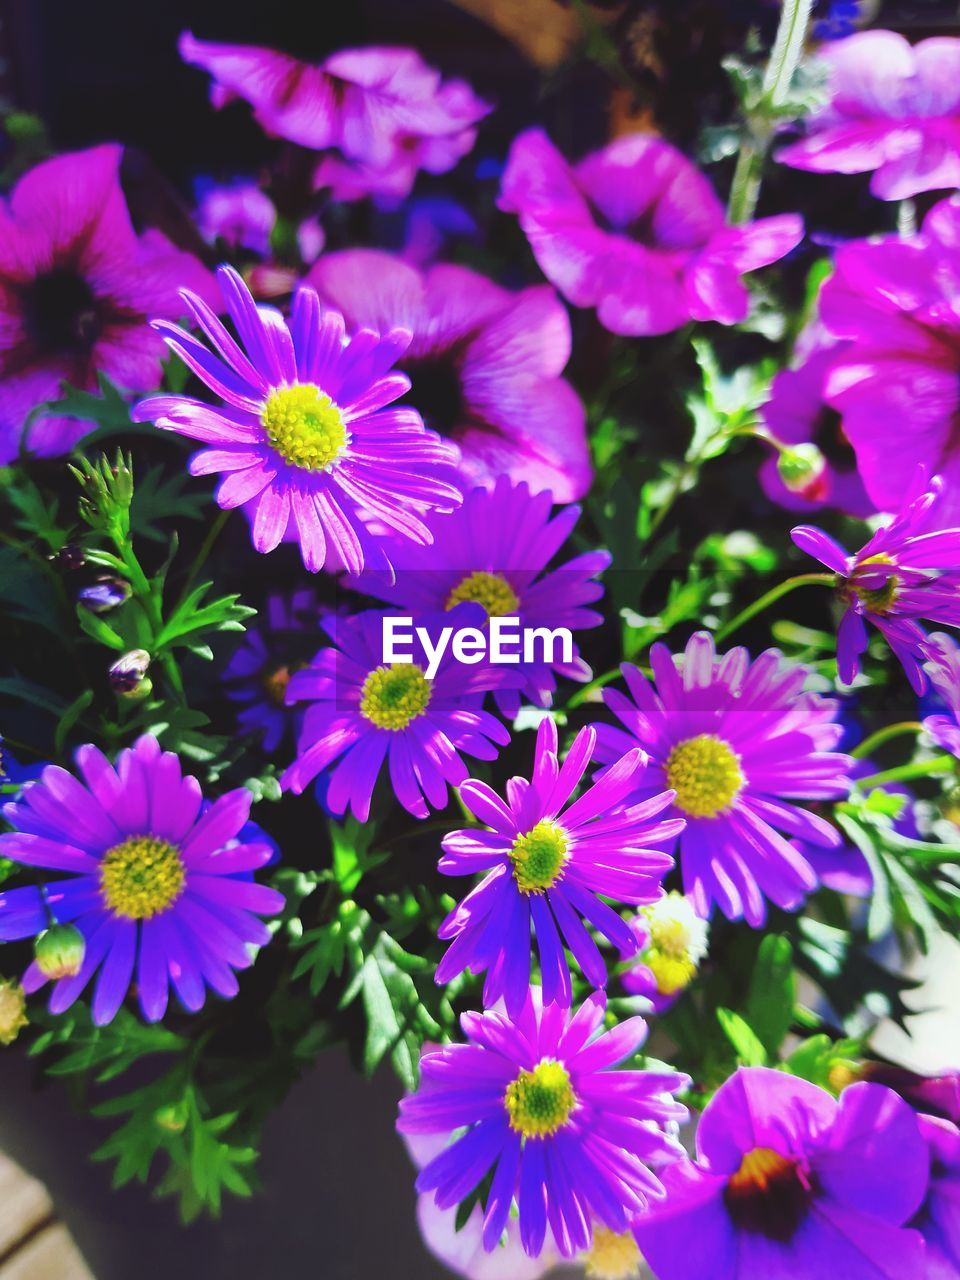 flowering plant, flower, freshness, fragility, vulnerability, petal, plant, beauty in nature, flower head, inflorescence, growth, close-up, nature, no people, purple, day, focus on foreground, pollen, pink color, high angle view